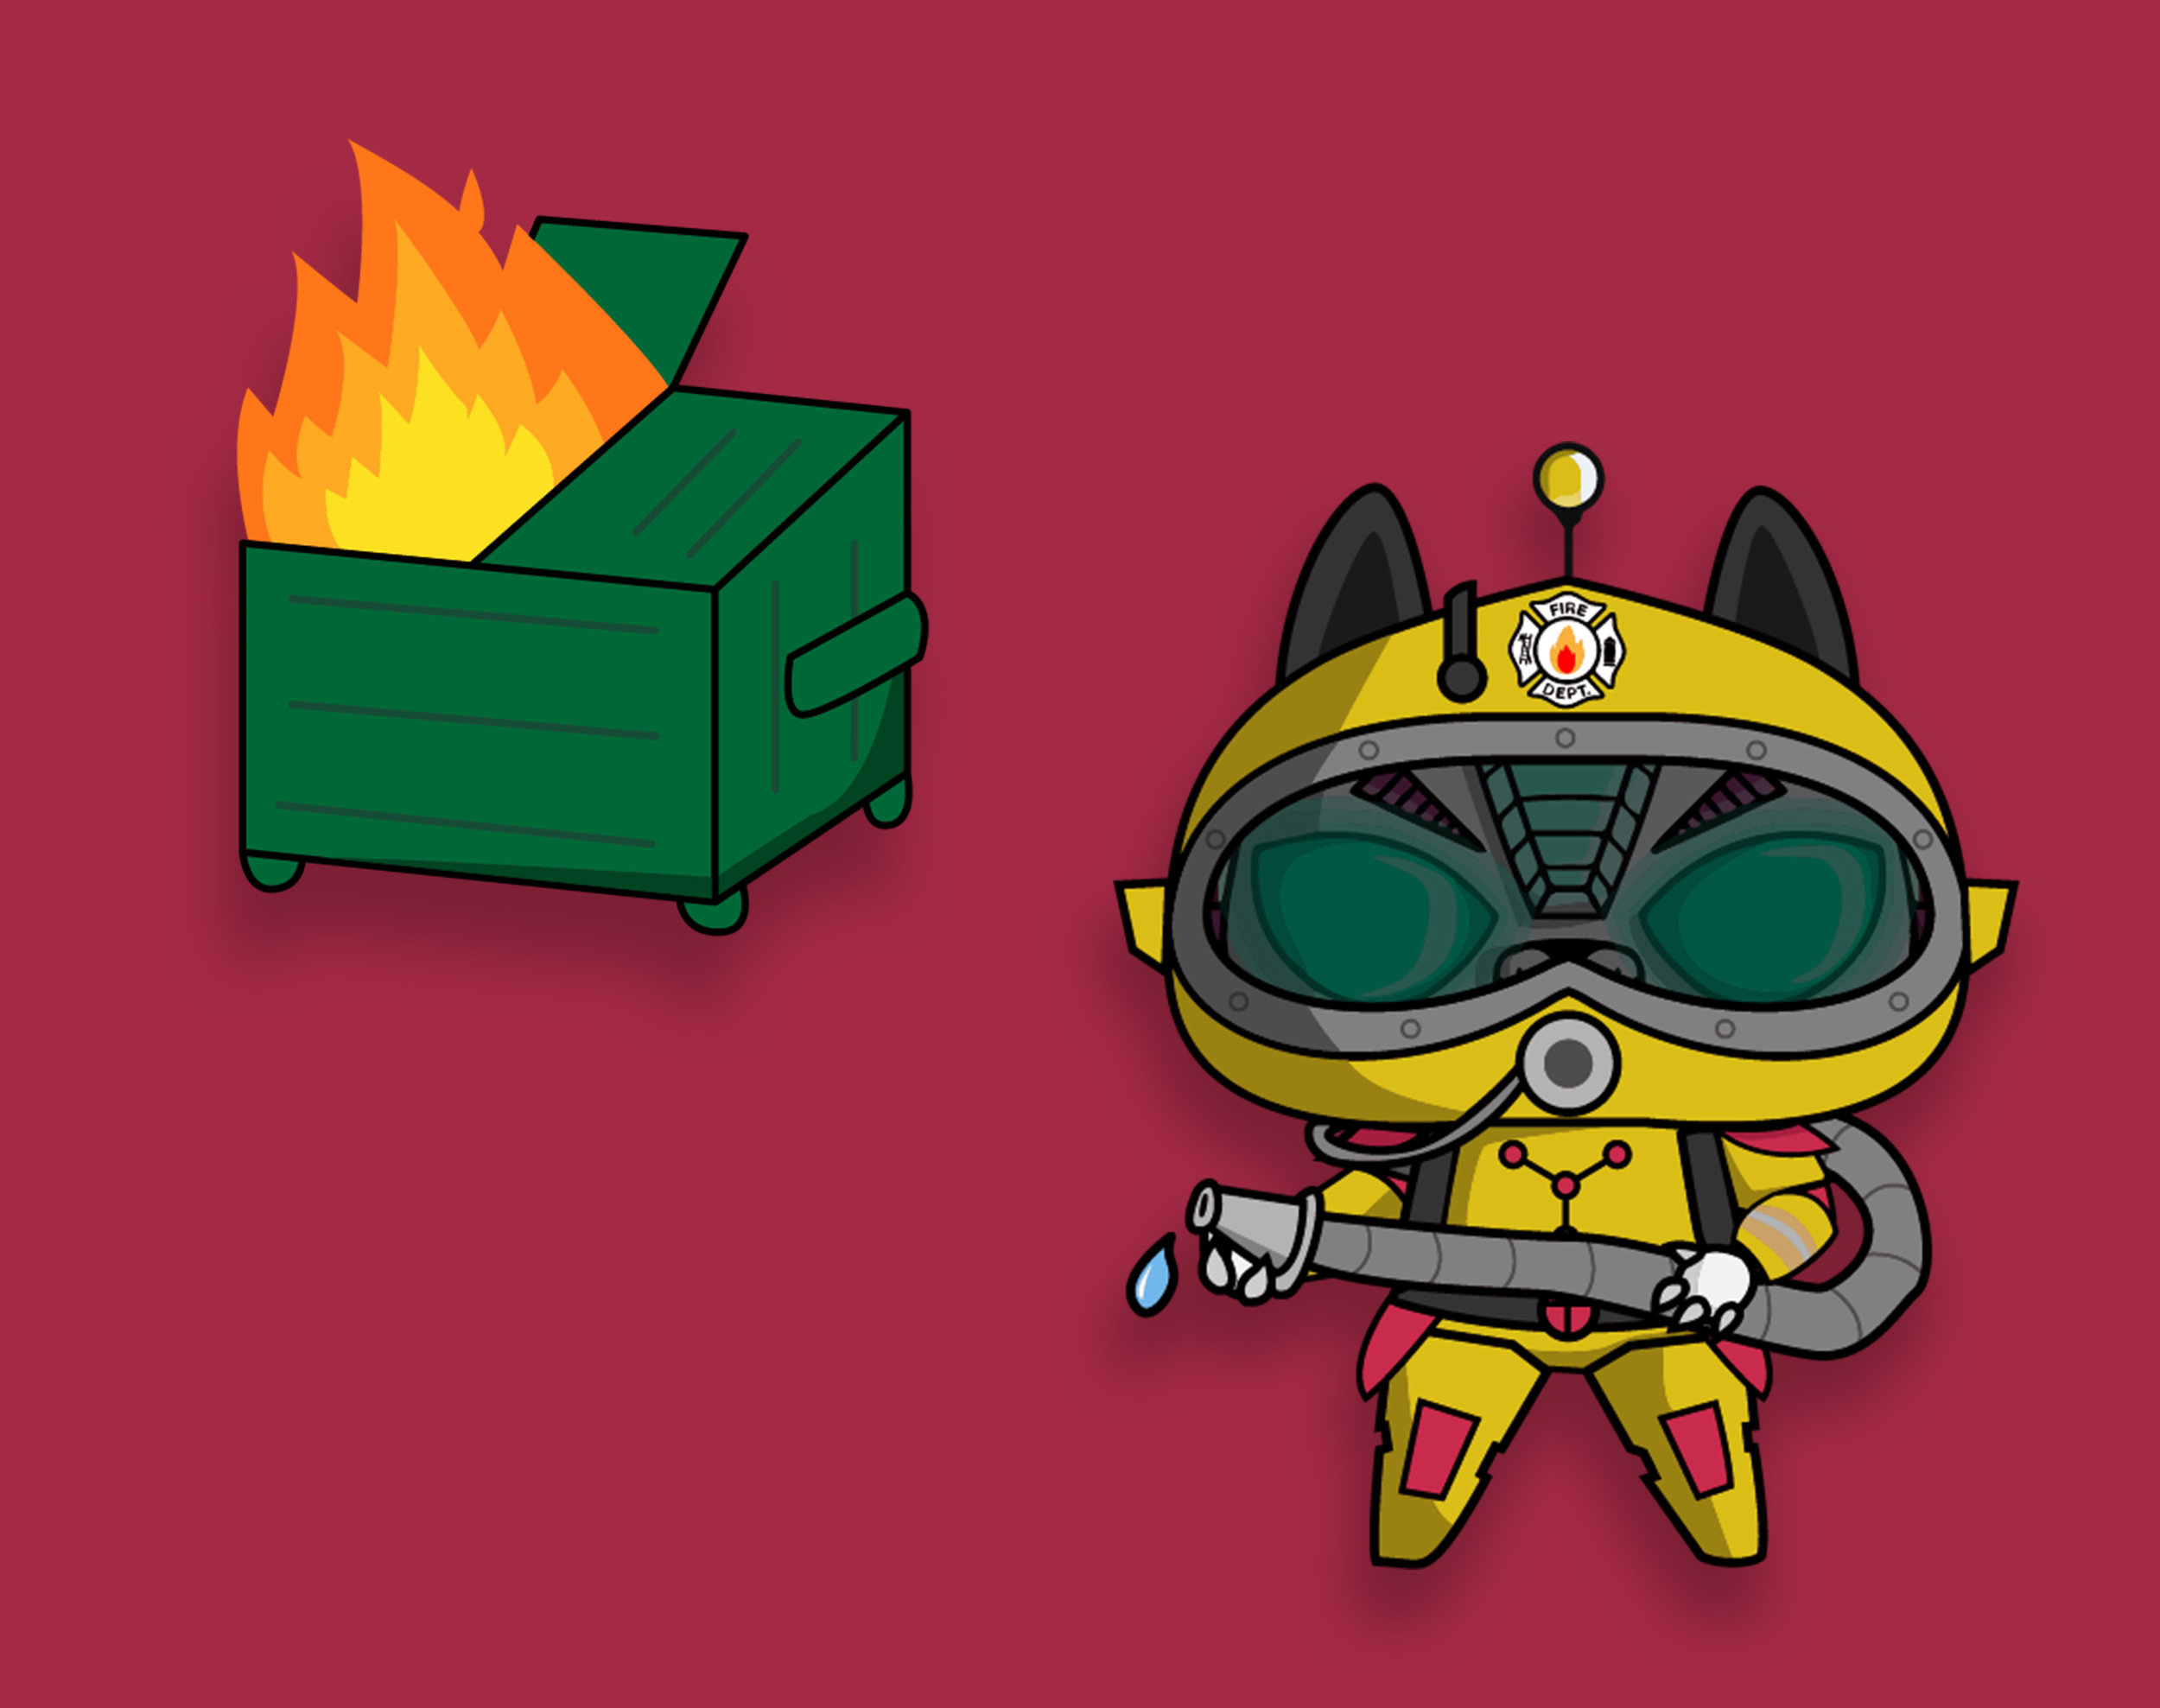 Firecat - A futuristic firefighter version of IONCAT. Inspired from the popular video game series Mass Effect.